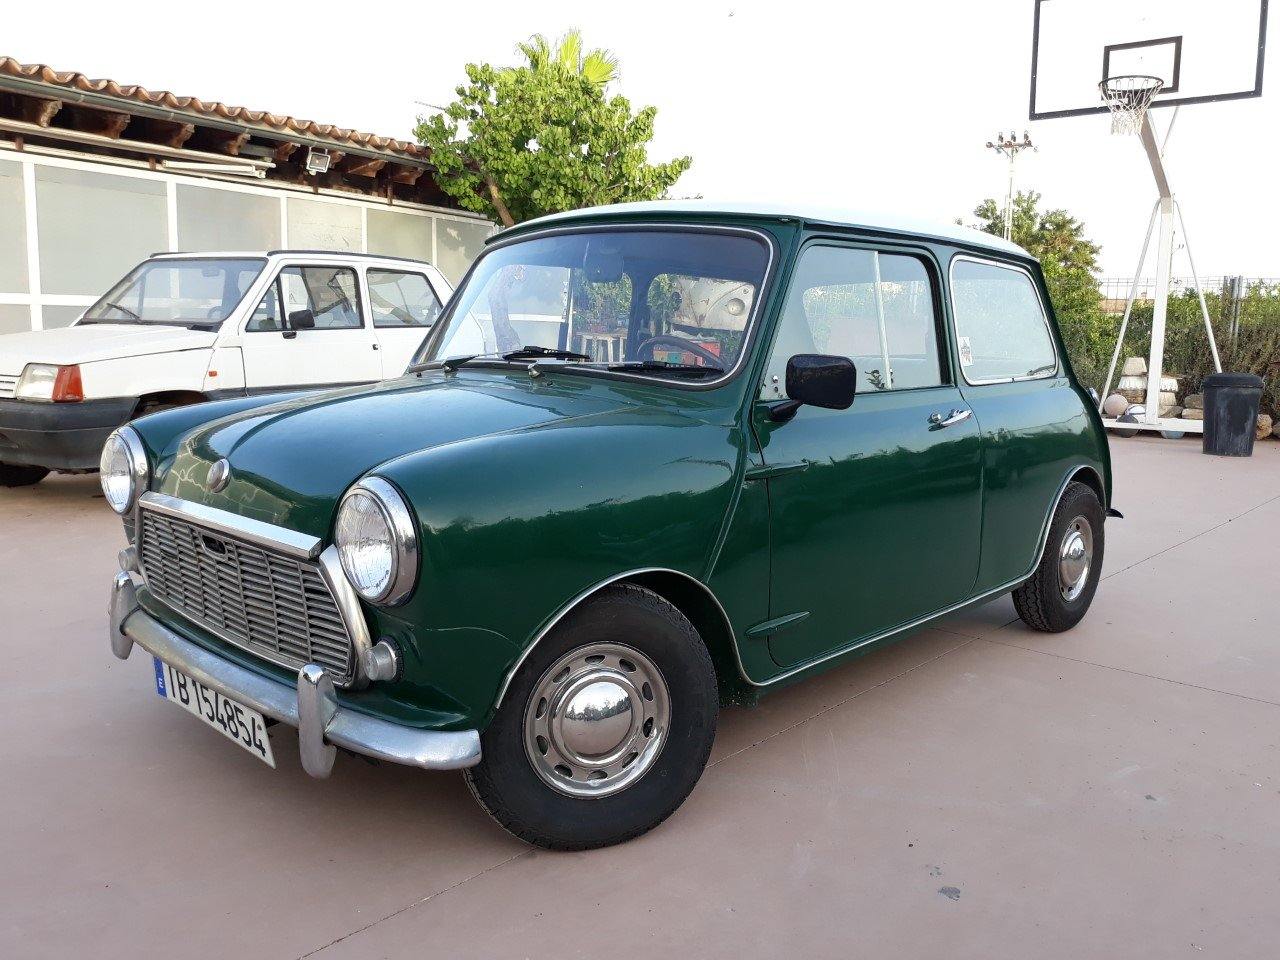 1979 LHD-Authi Mini 1000 Automatic year 1970  For Sale (picture 1 of 6)